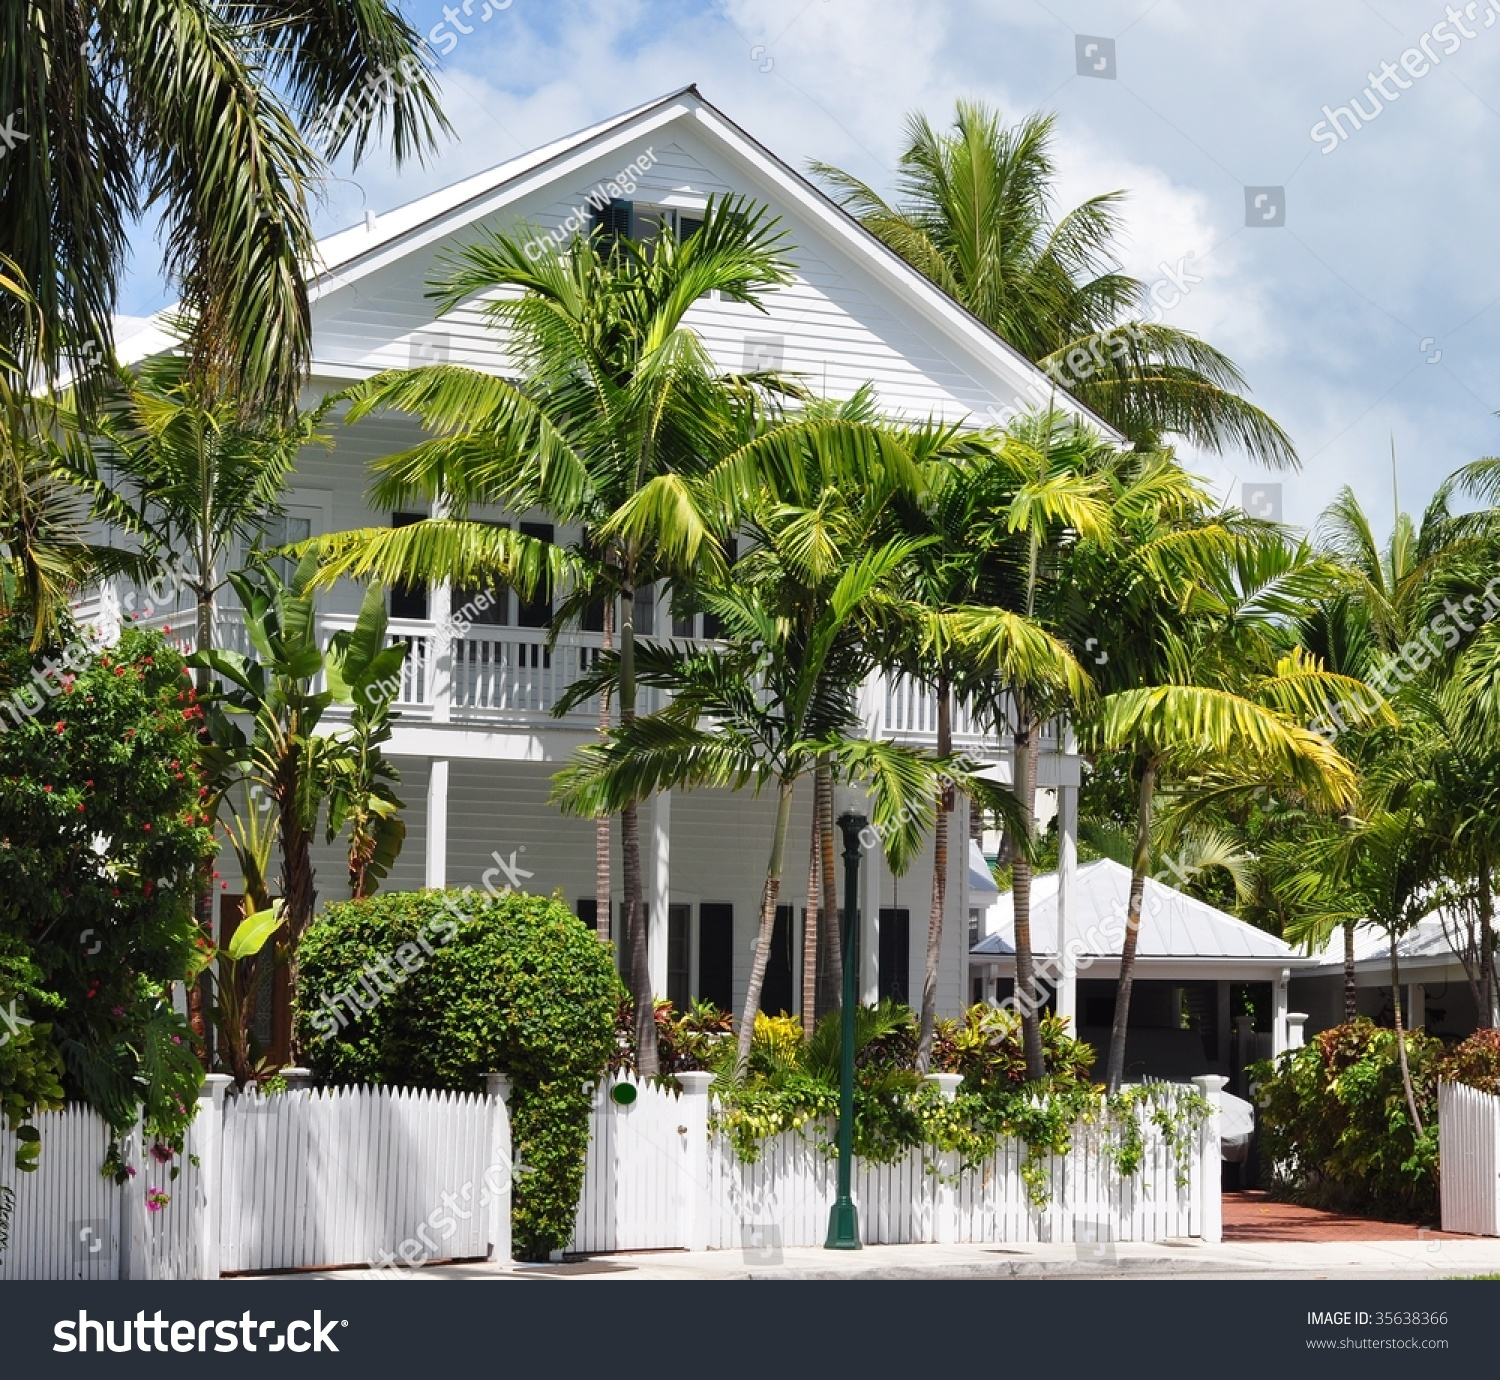 Key west style architecture stock photo 35638366 for Key west architecture style